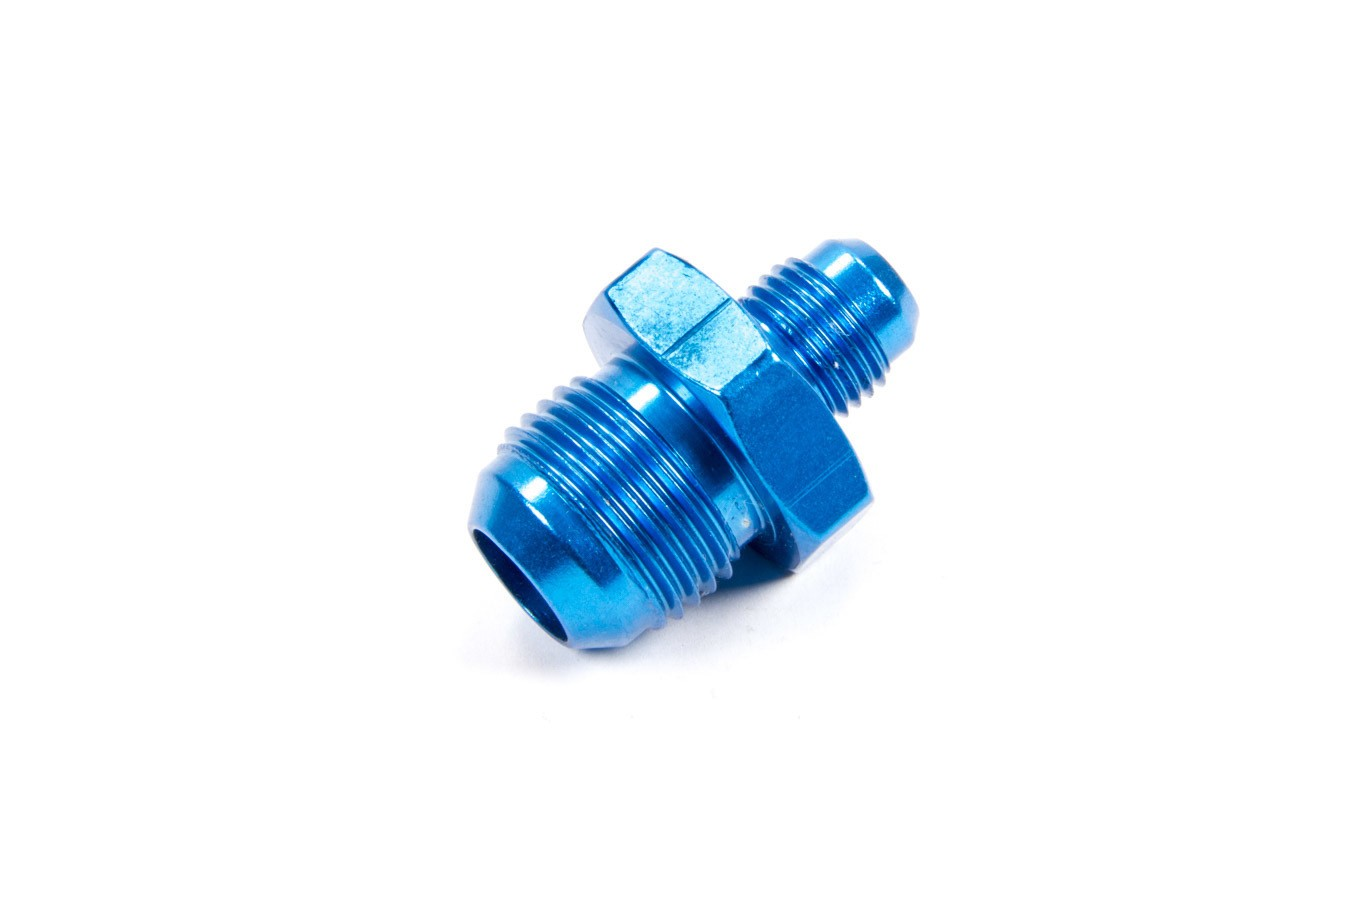 Fragola 491914 Fitting, Adapter, Straight, 10 AN Male to 6 AN Male, Aluminum, Blue Anodize, Each